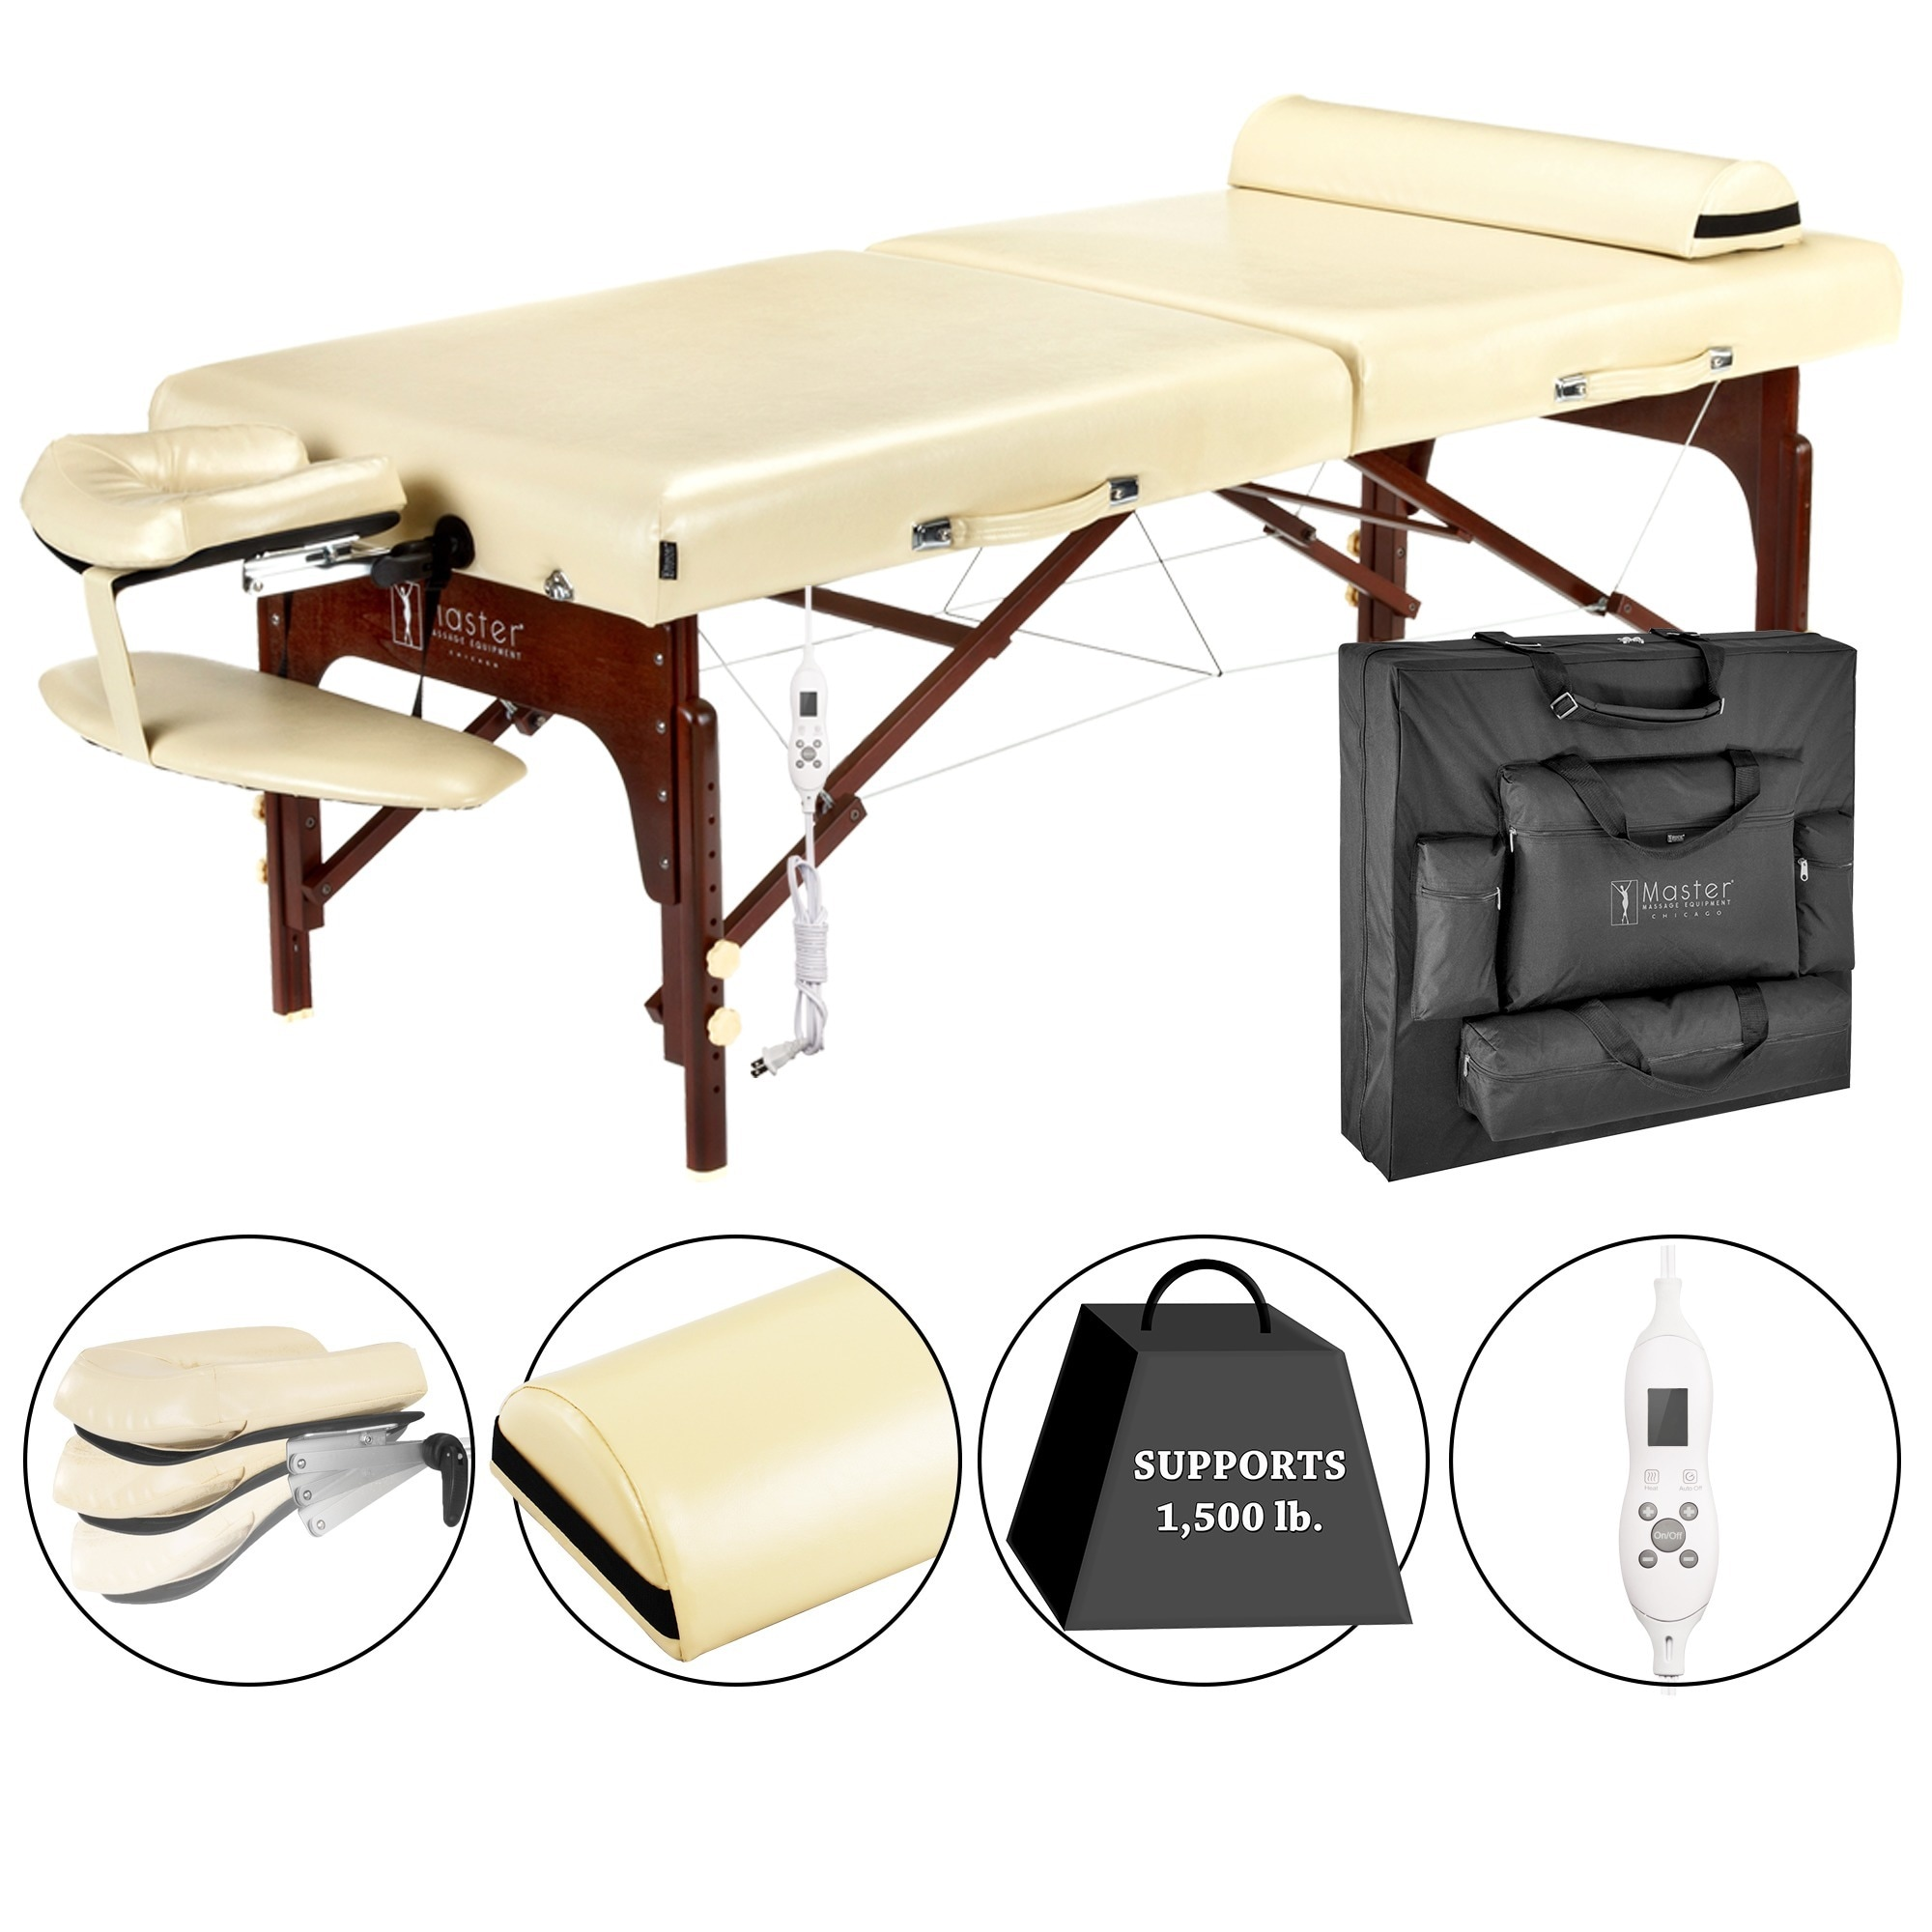 Master Massage 30-inch Magnolia Therma-Top LX Table Packa...